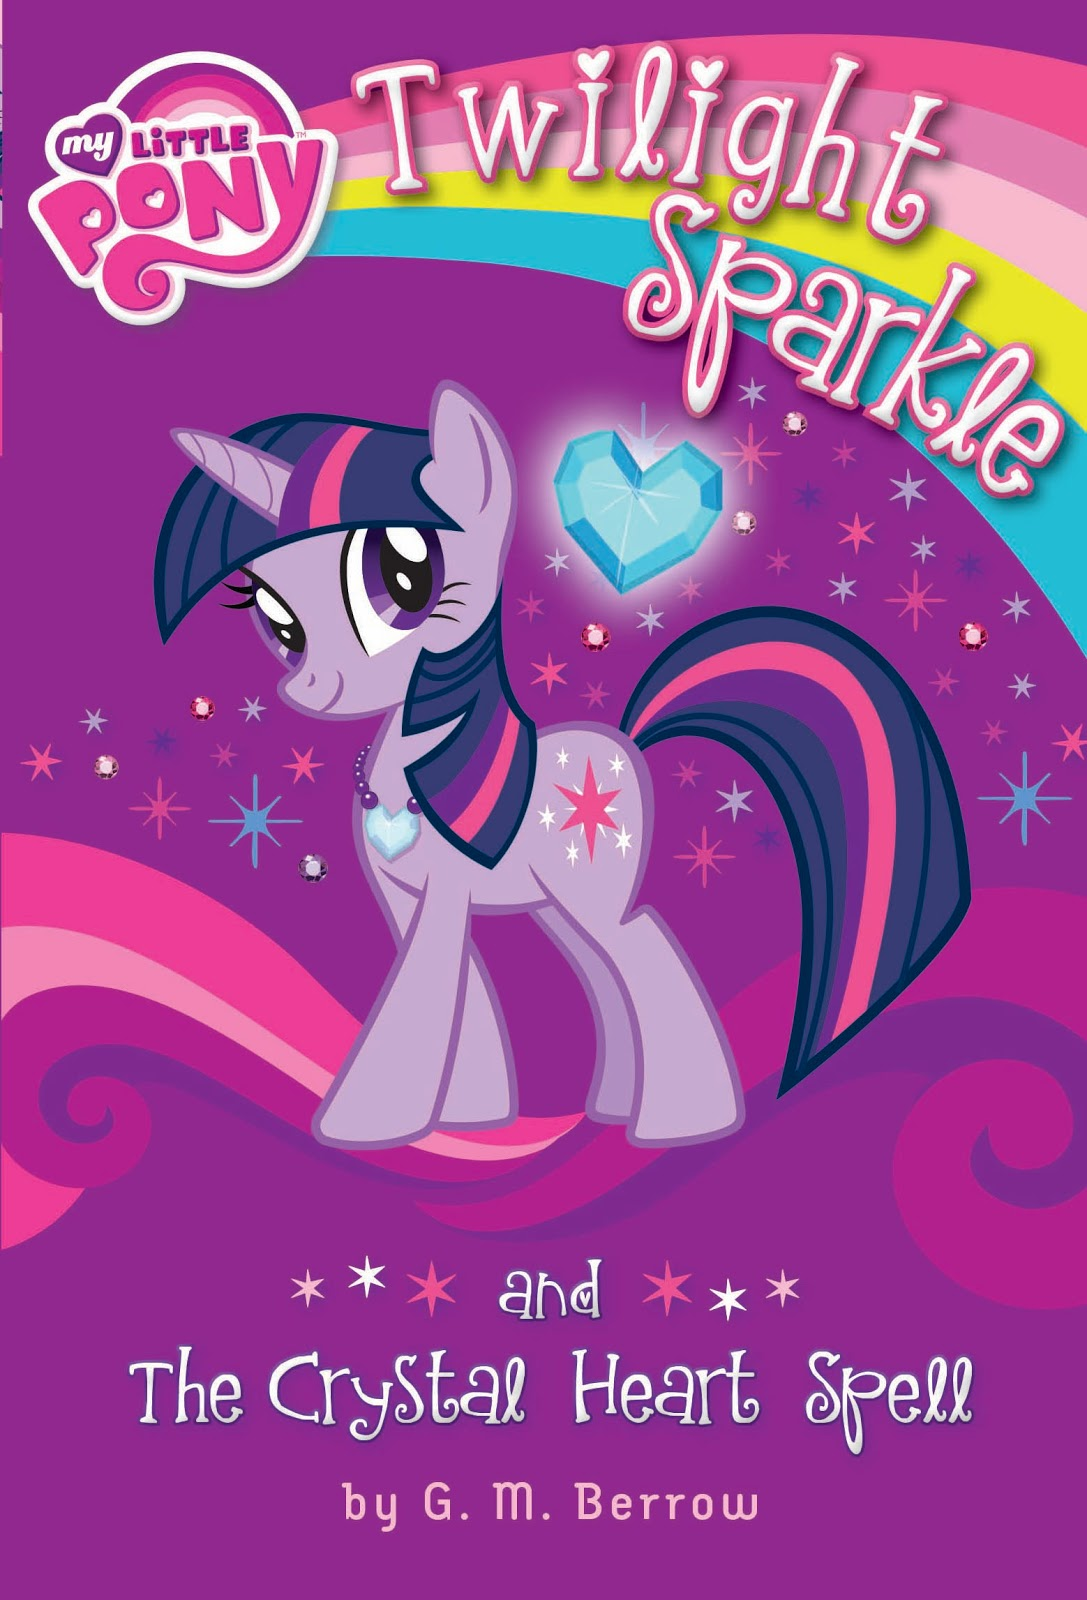 Chapter books - My Little Pony Friendship is Magic Wiki